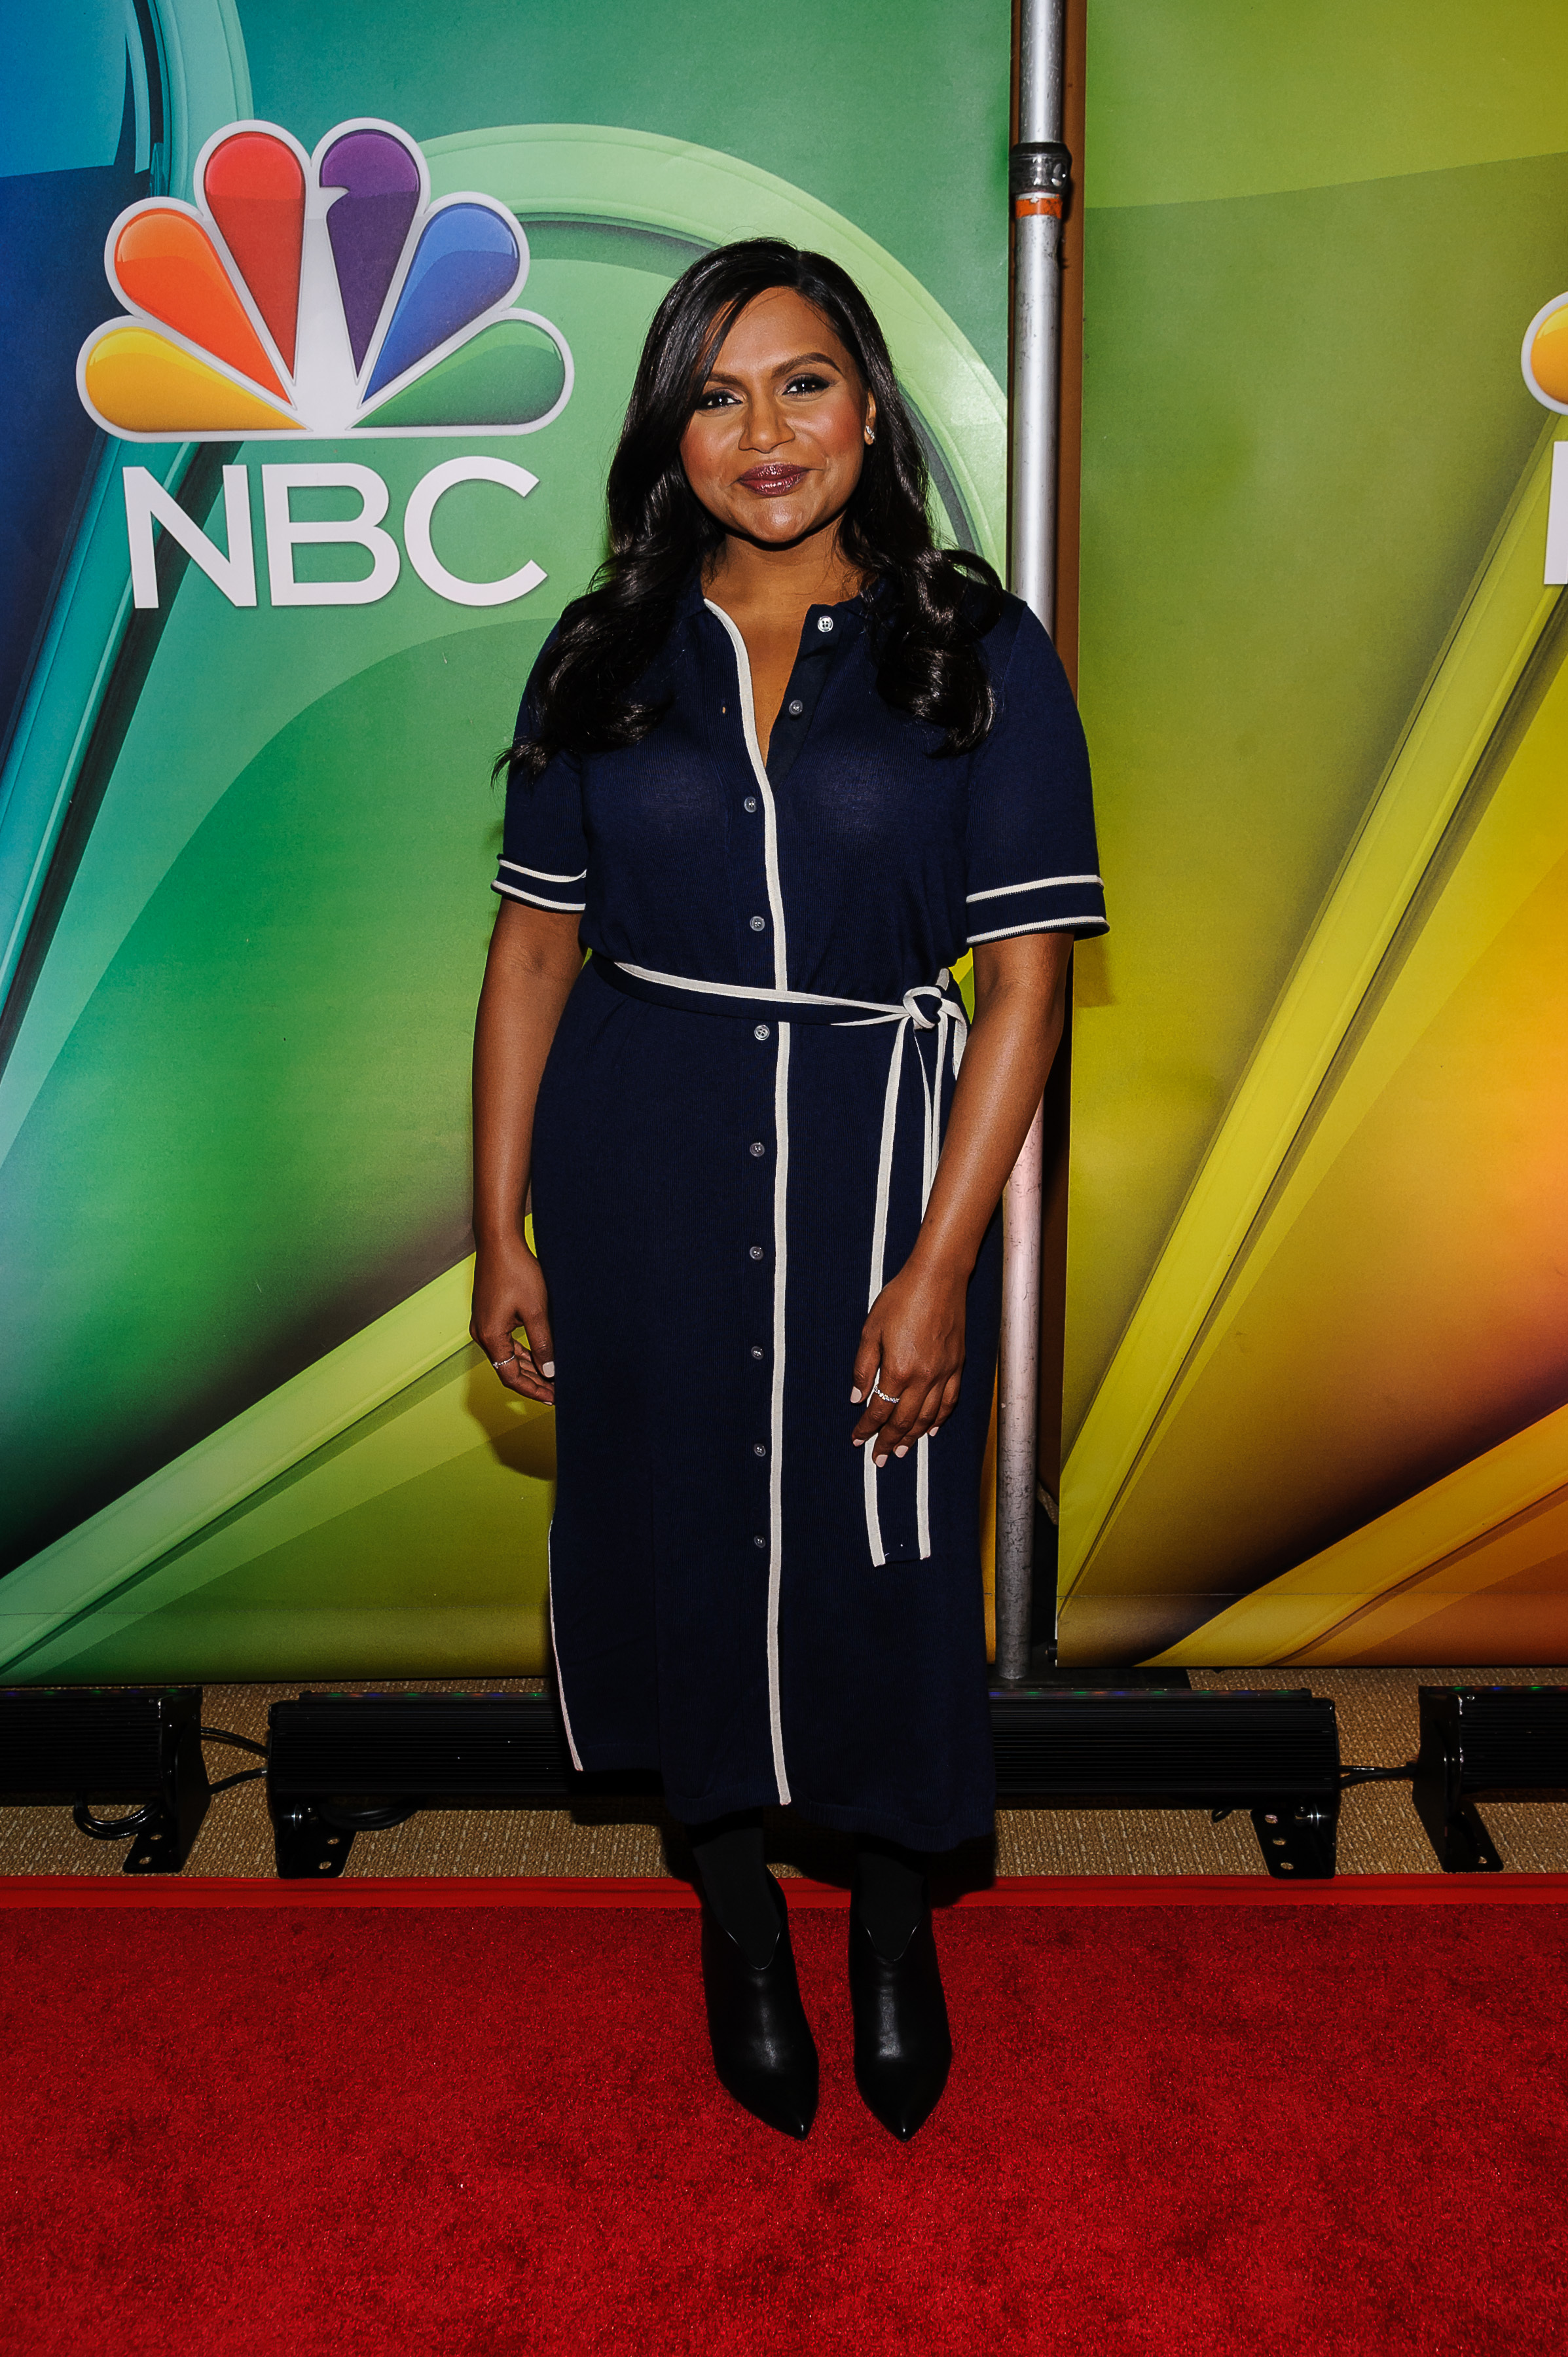 Mindy Kaling attends the NBC Mid Season Press Day in New York City on March 8, 2018.